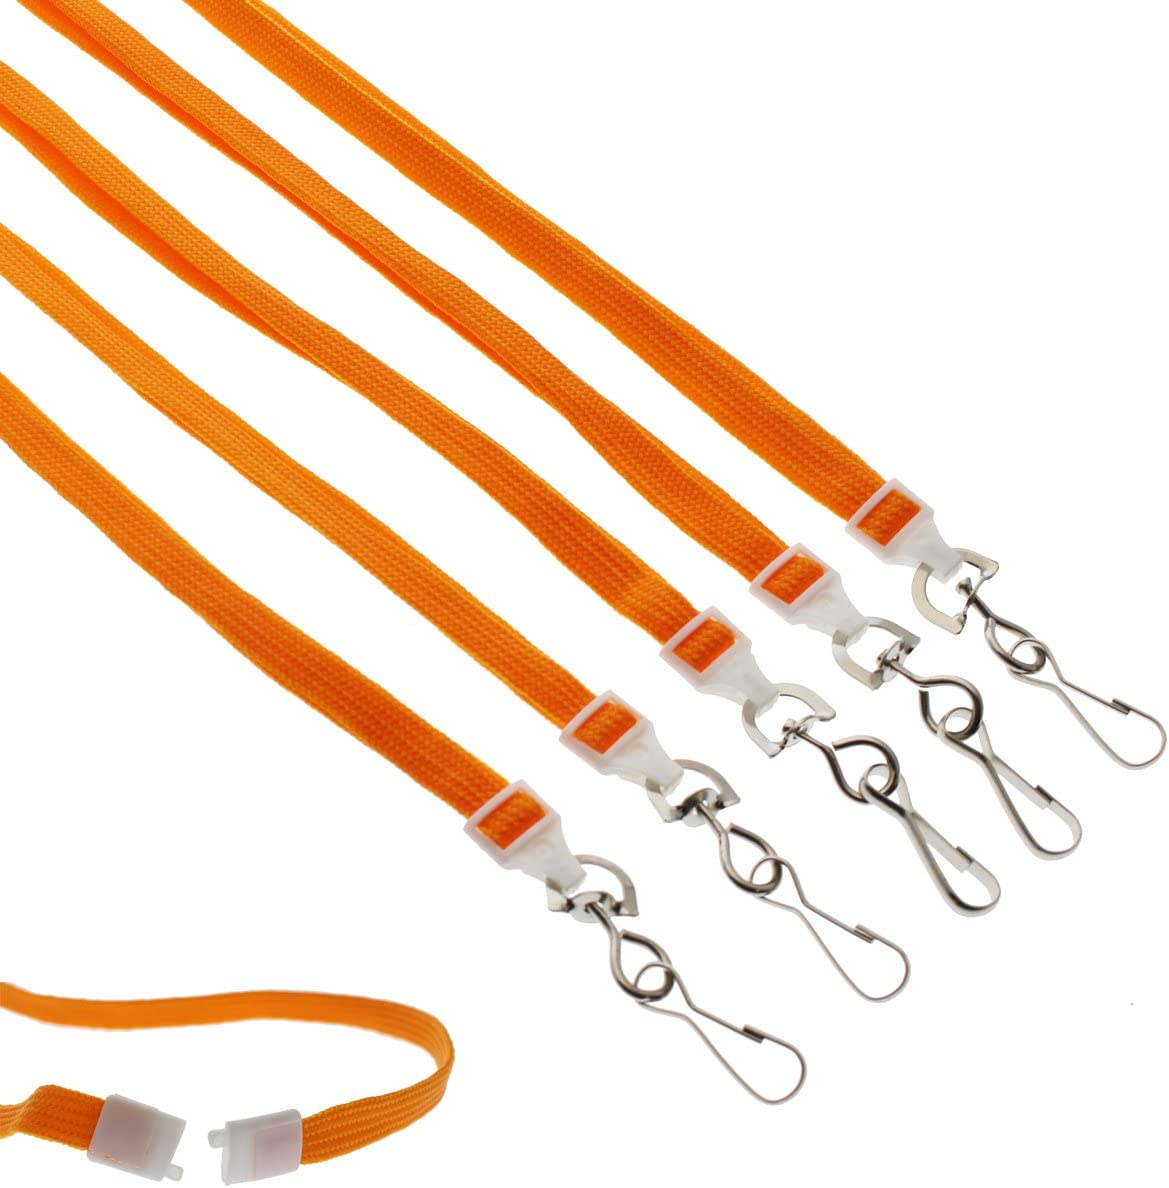 Bulk 25 Lanyards for ID Badges with Safety Breakaway /& Swivel Hook Specialist ID